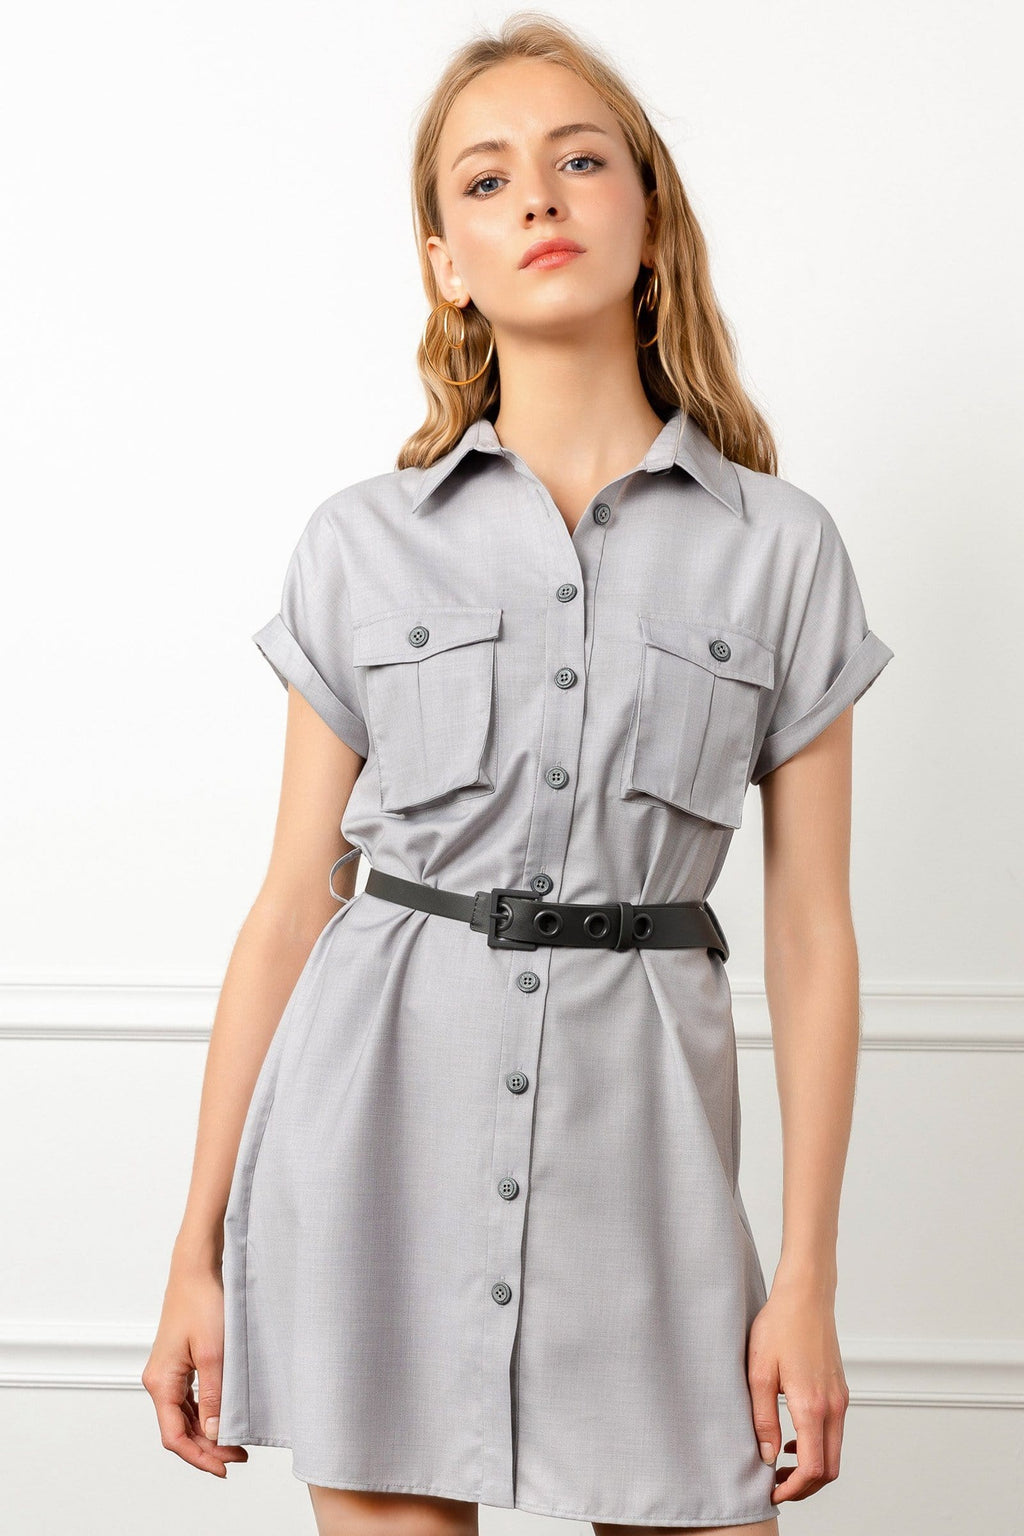 Light grey utility dress by J.ING